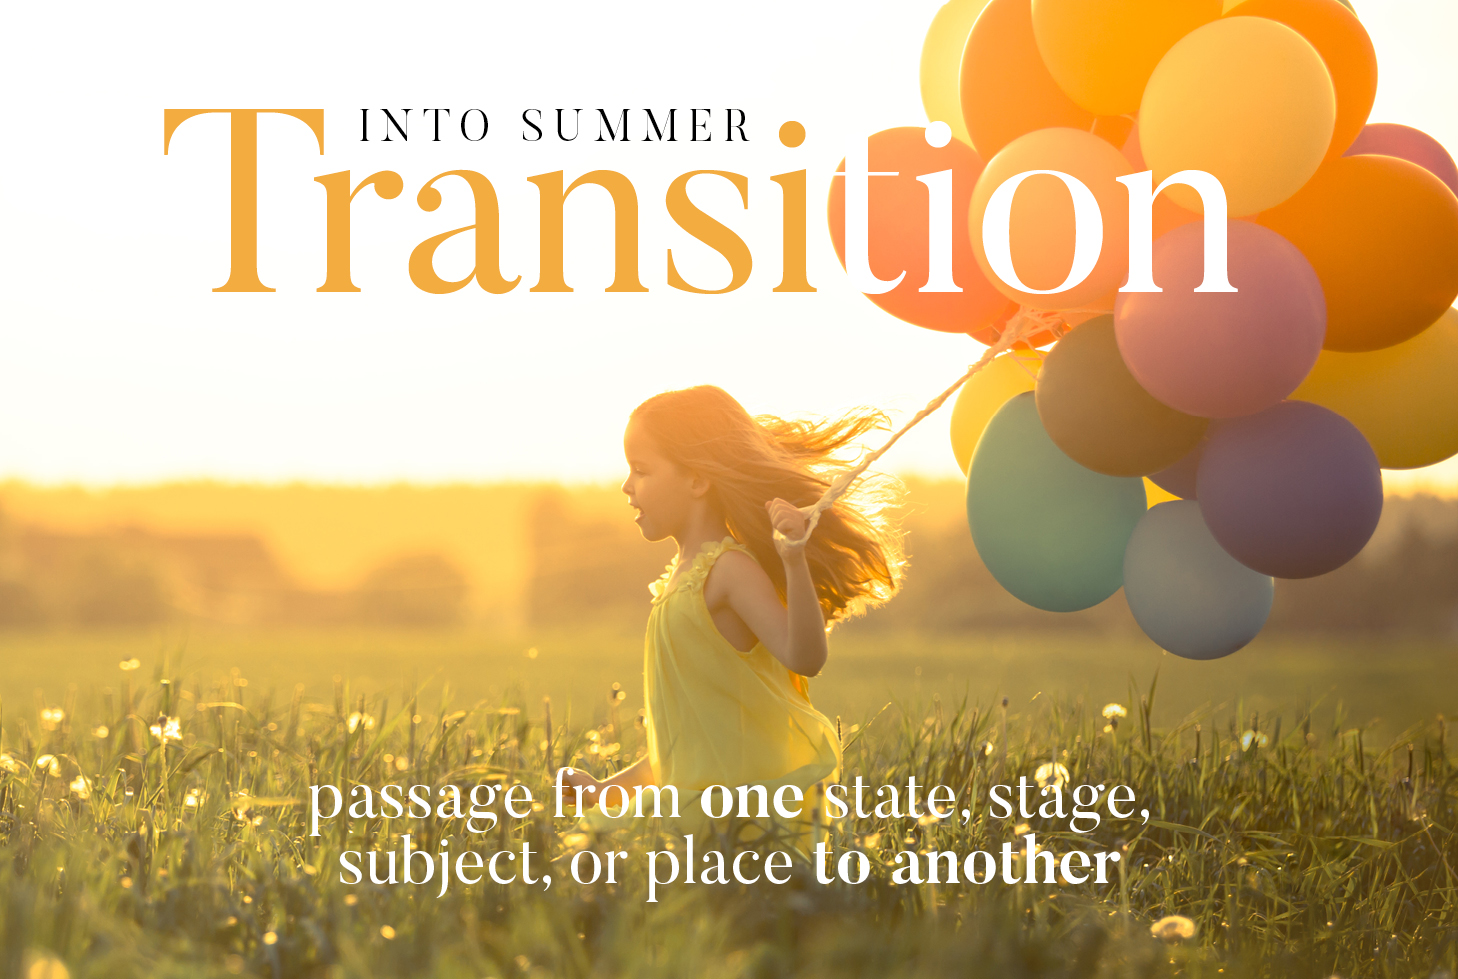 062118_TransitionToSummer.jpg